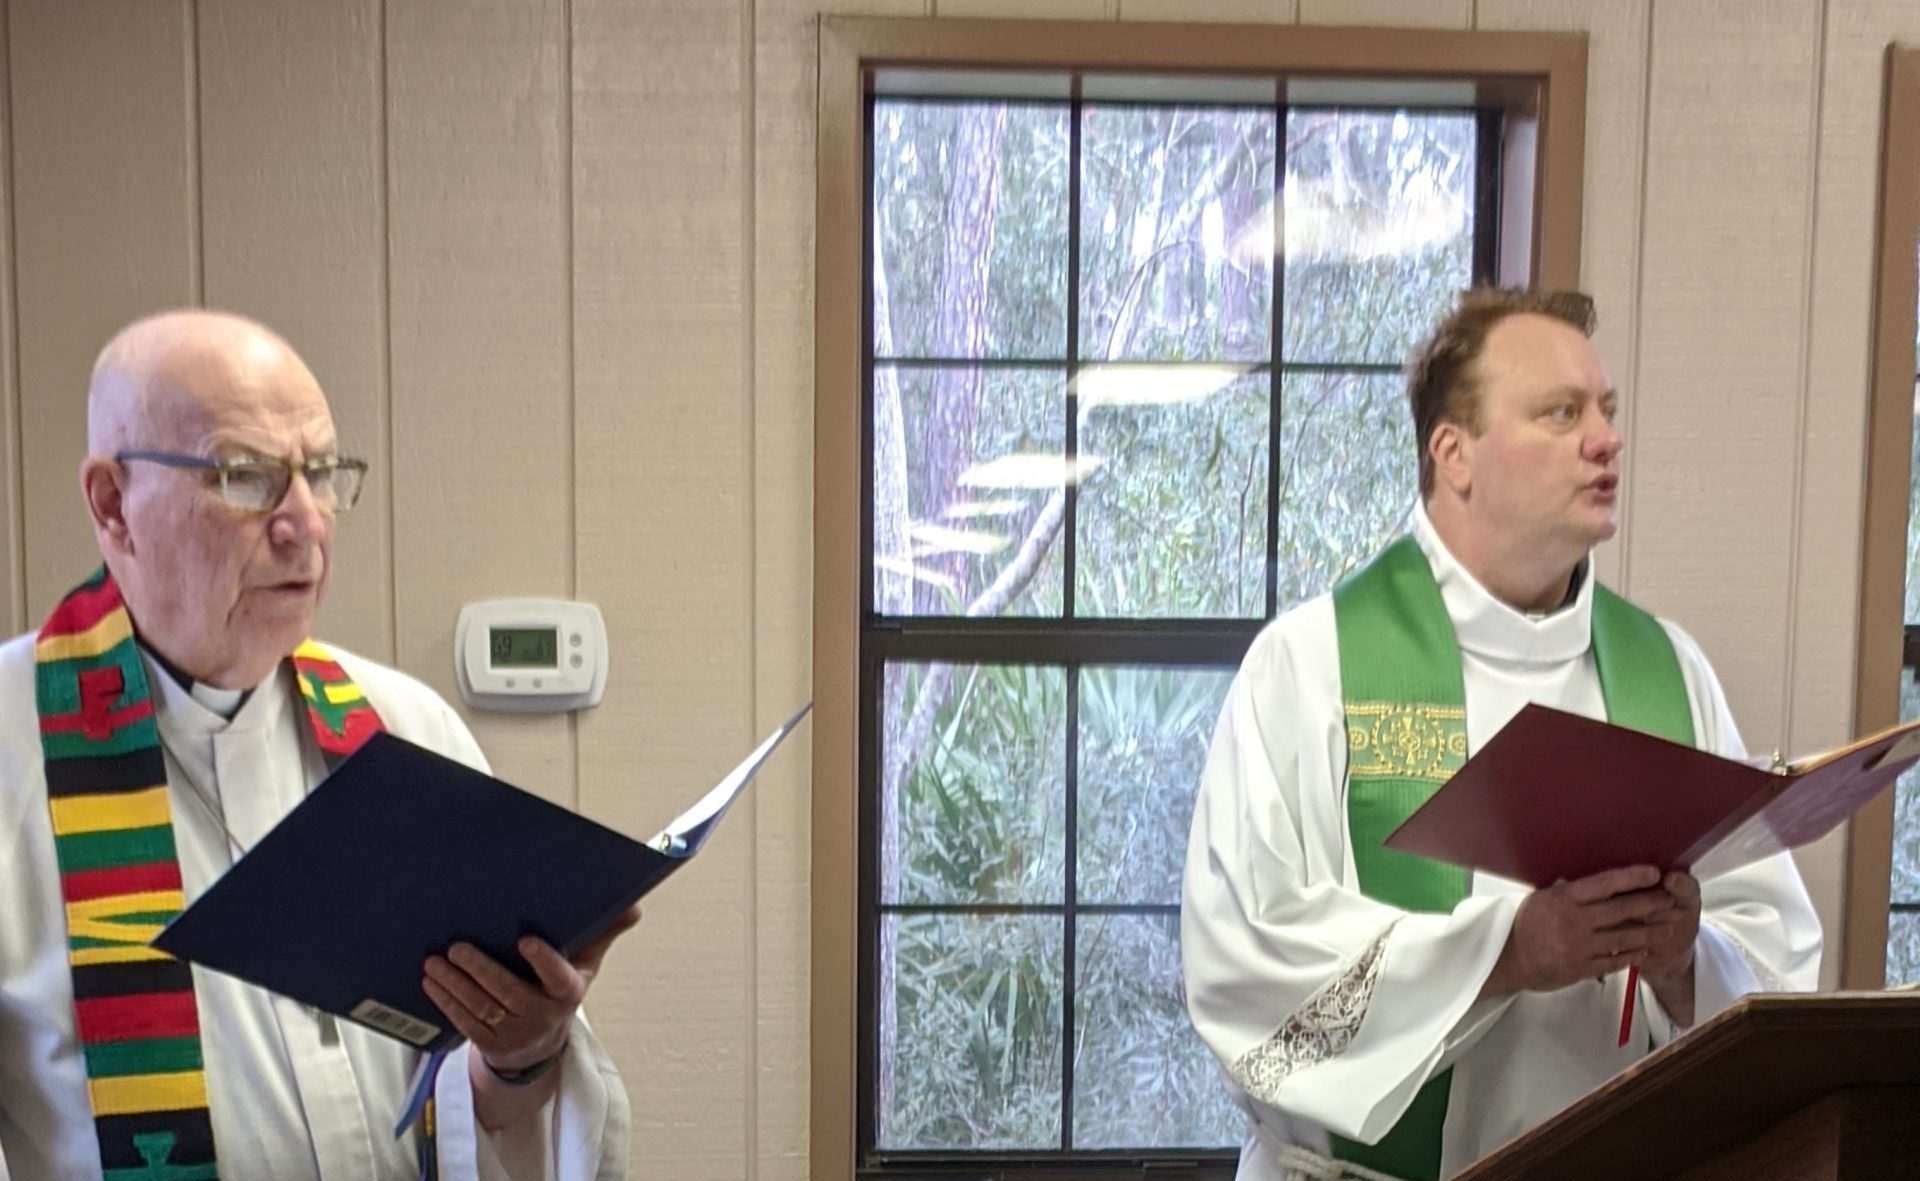 Pastors Peper and Talsness at 25 year celebrate at Skidaway Island State Park